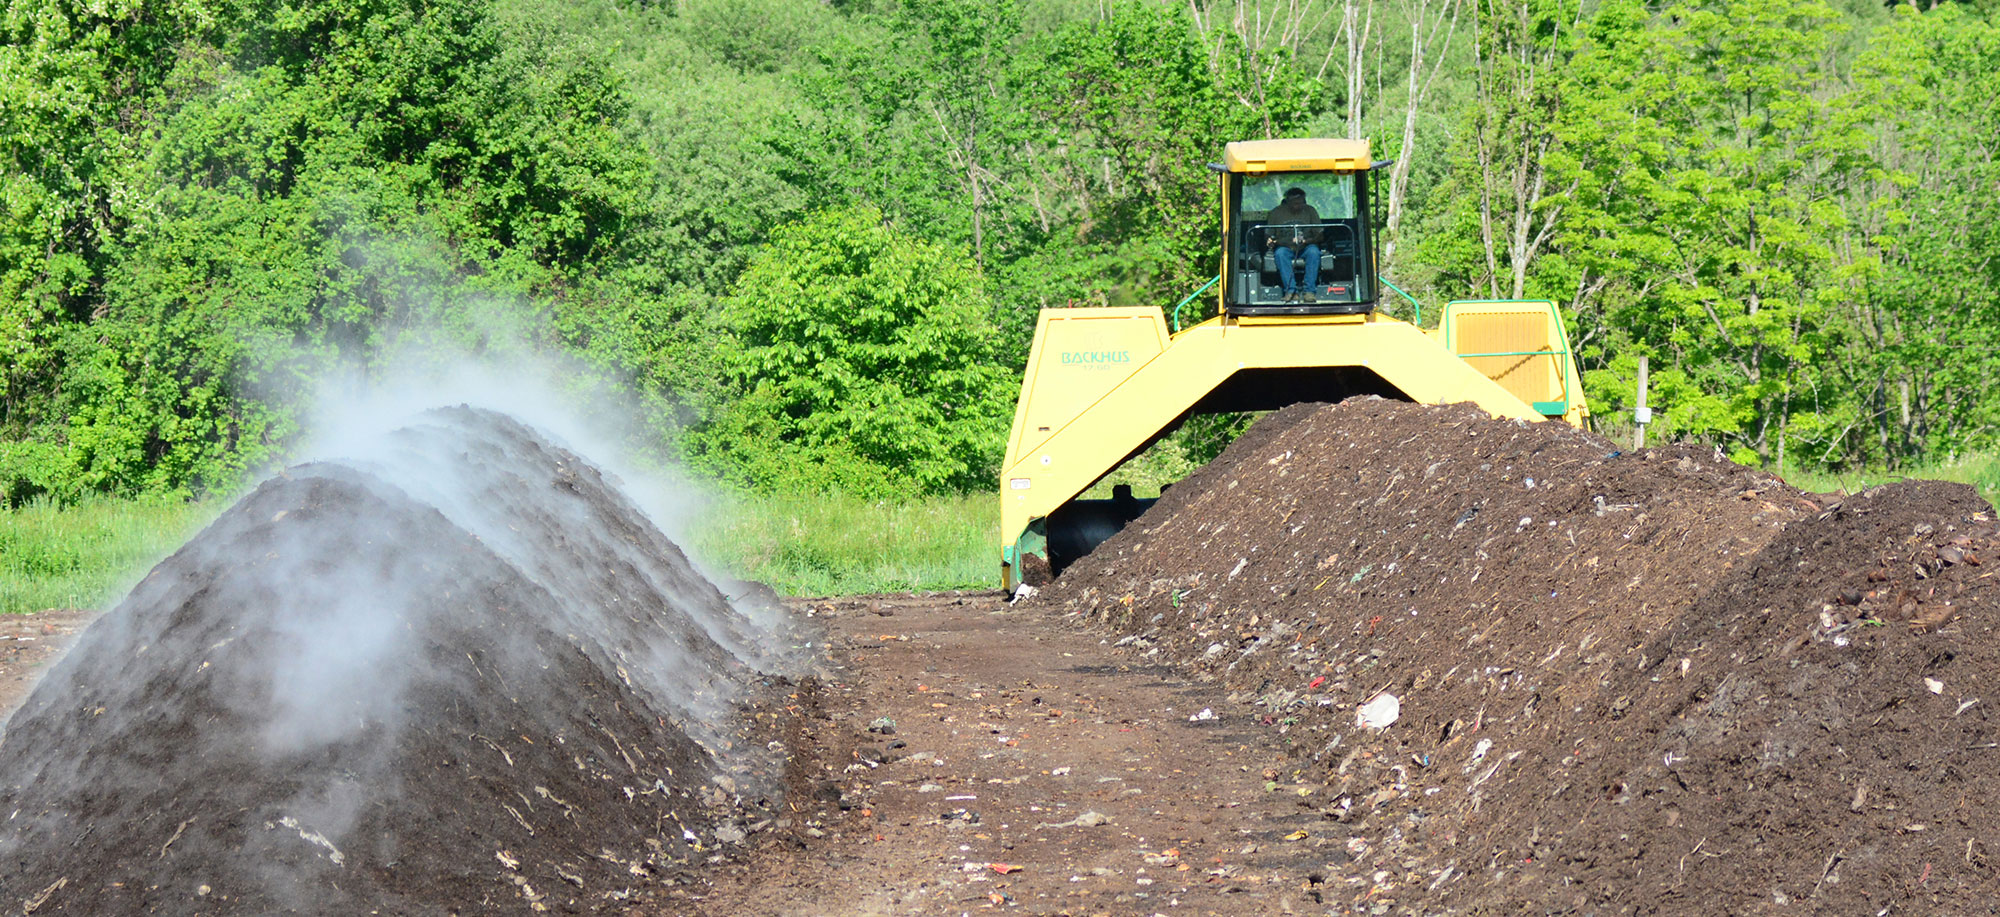 A Backhus is Used to Aerate the Compost